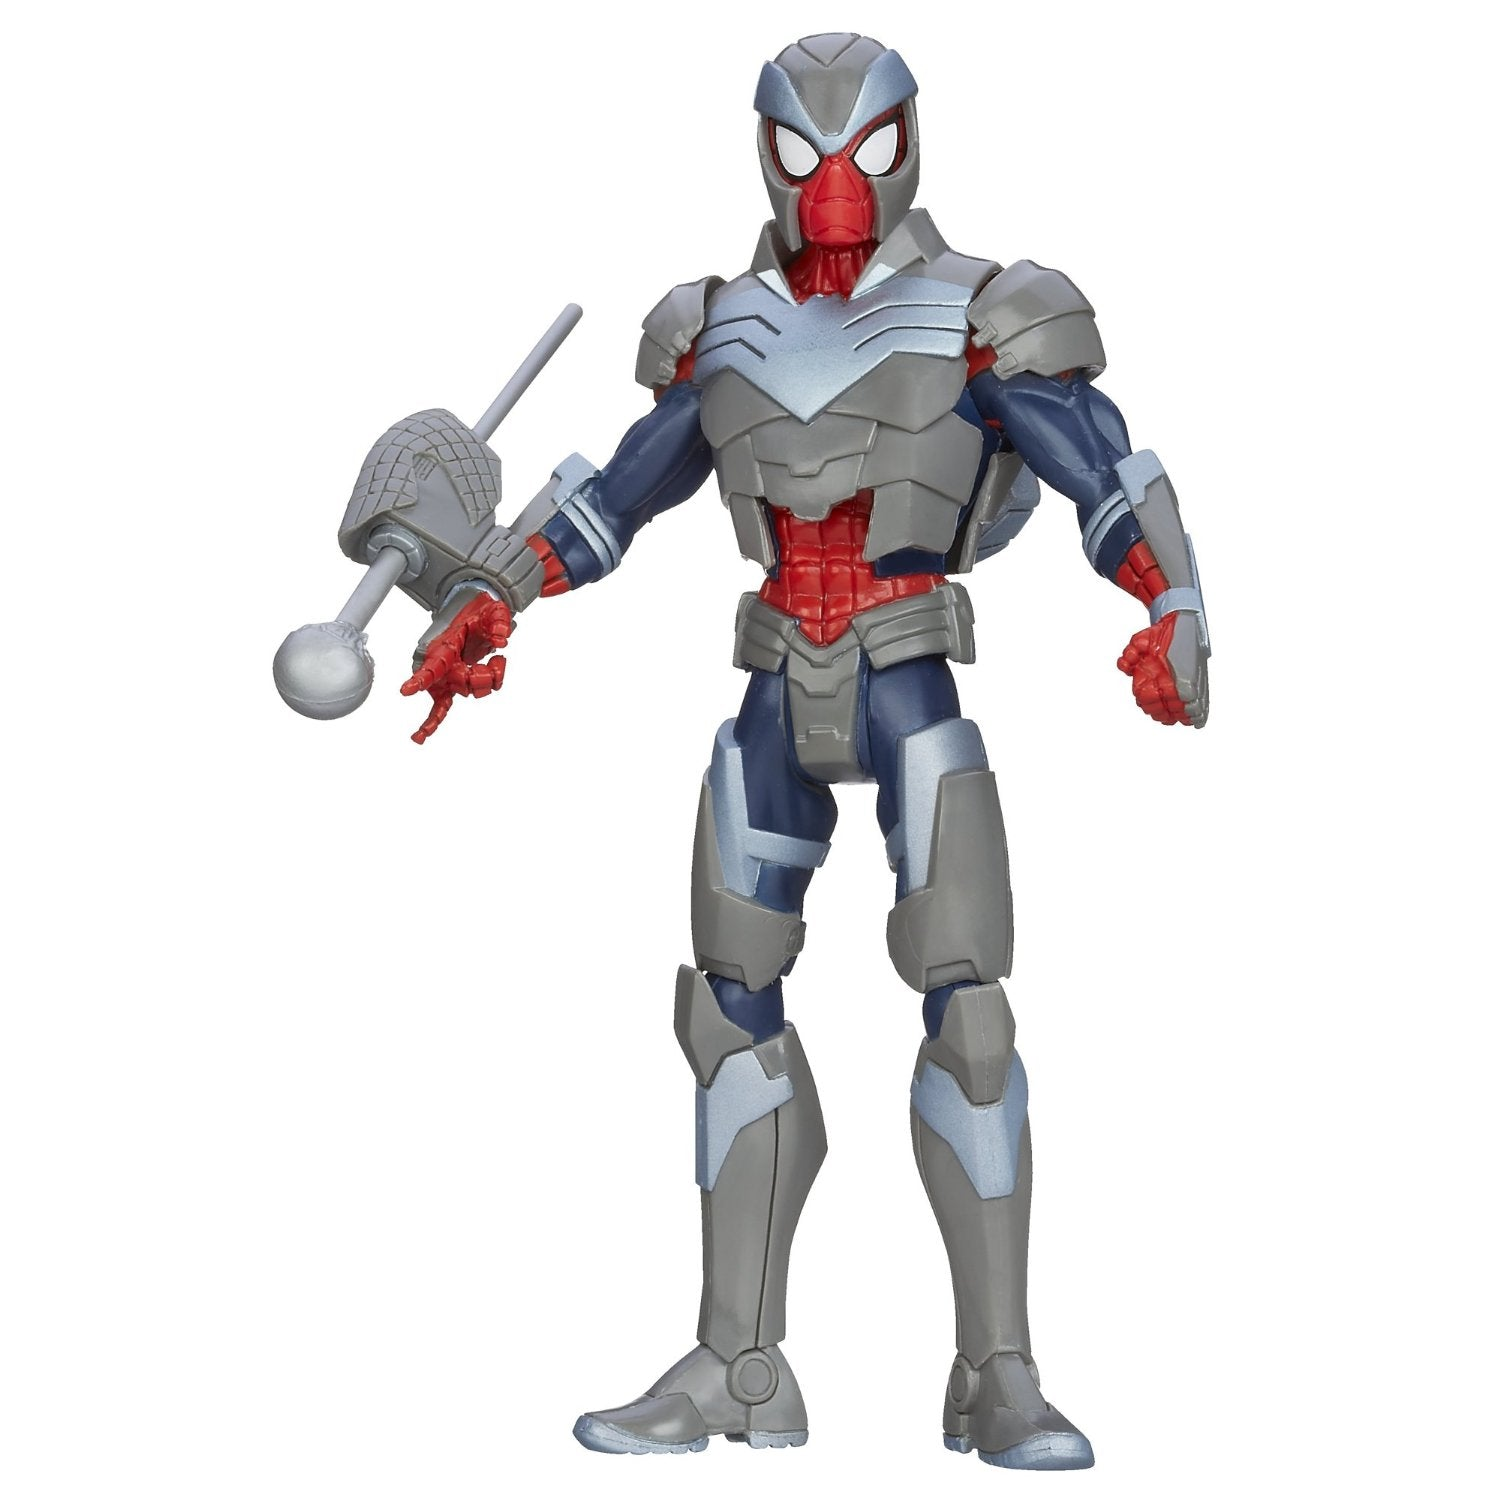 Spider-Man Action Figures - Ultimate Shield Tech Spider-Man